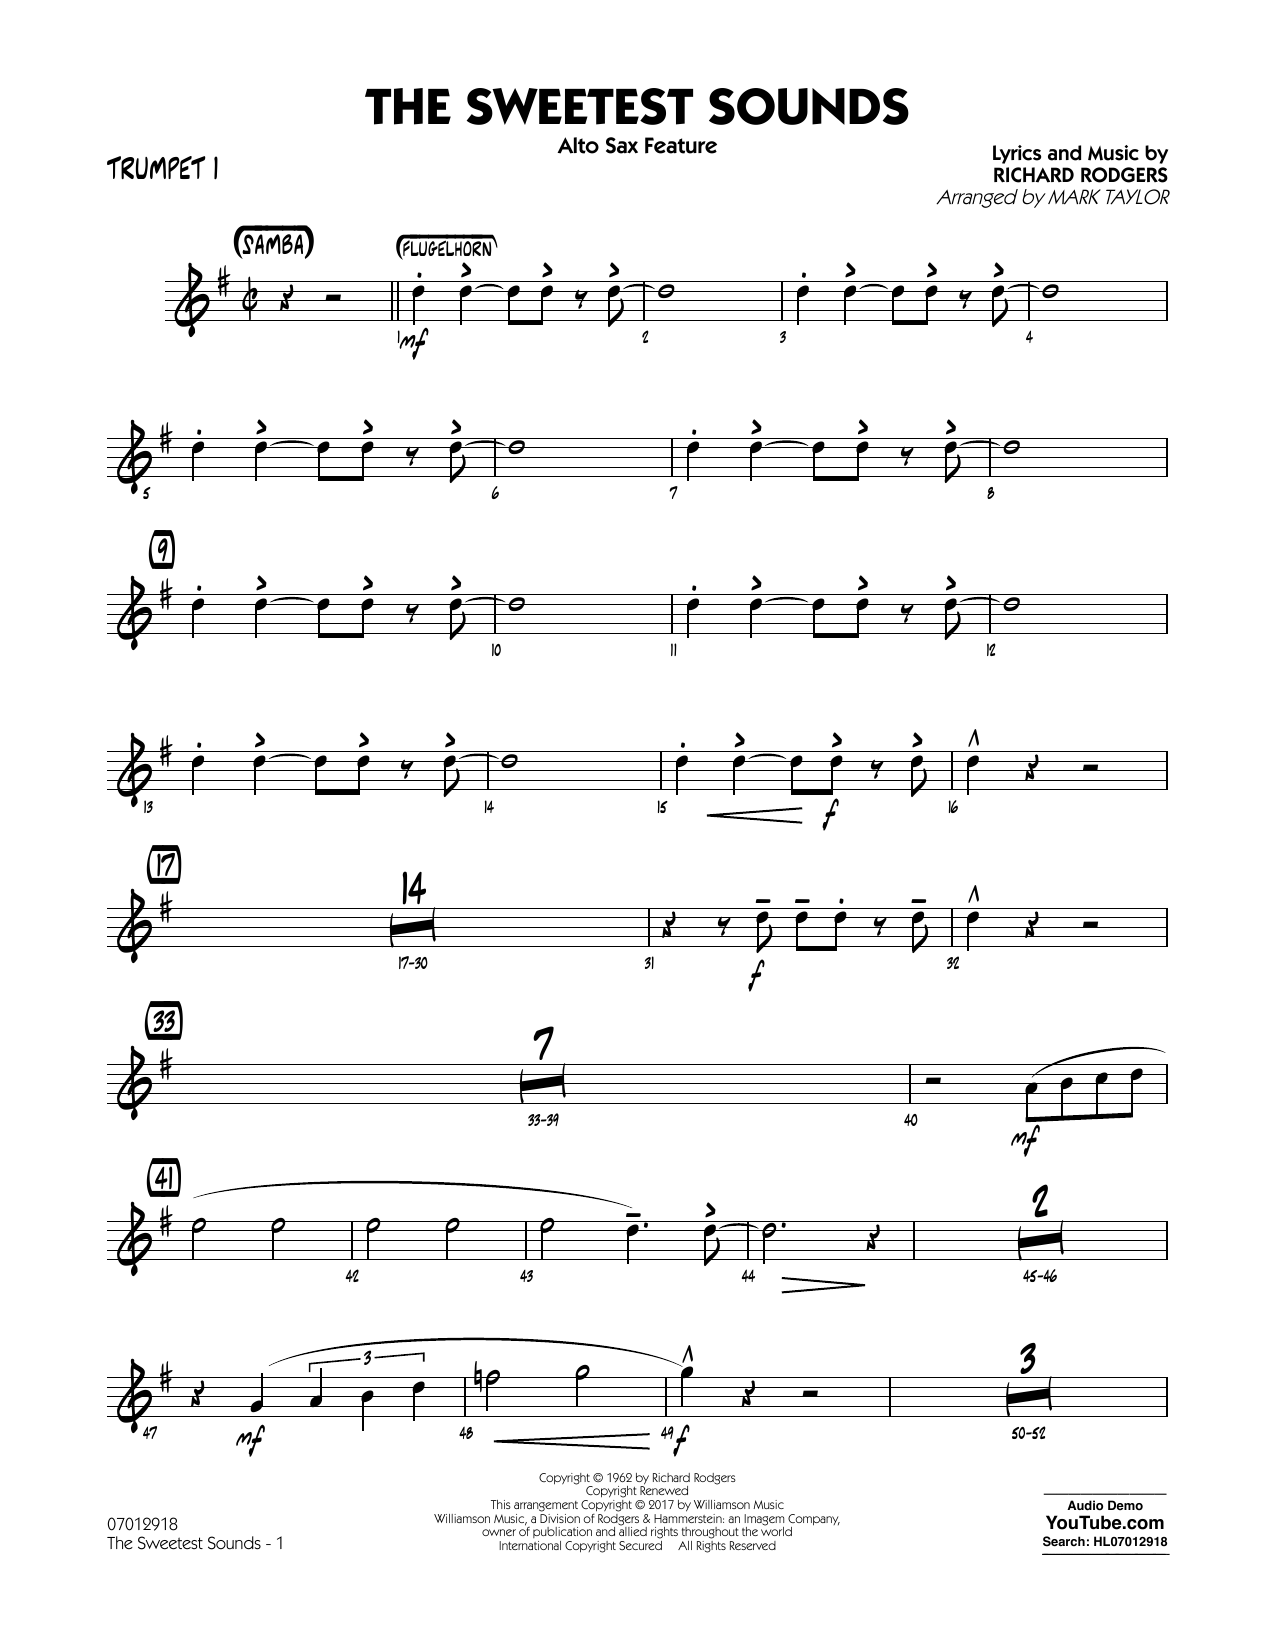 The Sweetest Sounds (Alto Sax Feature) - Trumpet 1 Sheet Music